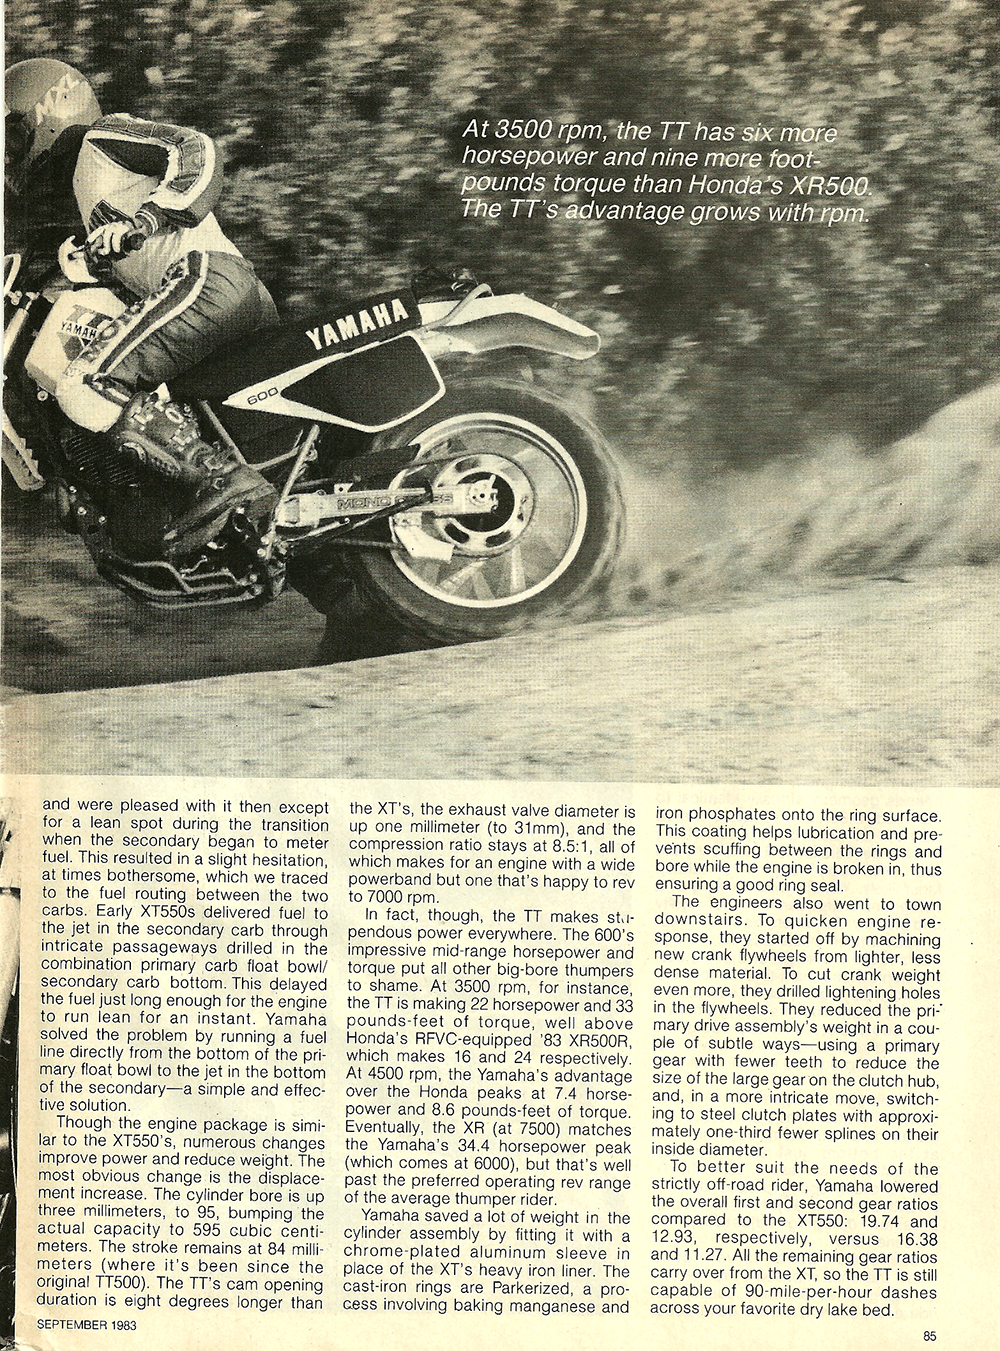 1983 Yamaha TT600K off road test 4.jpg